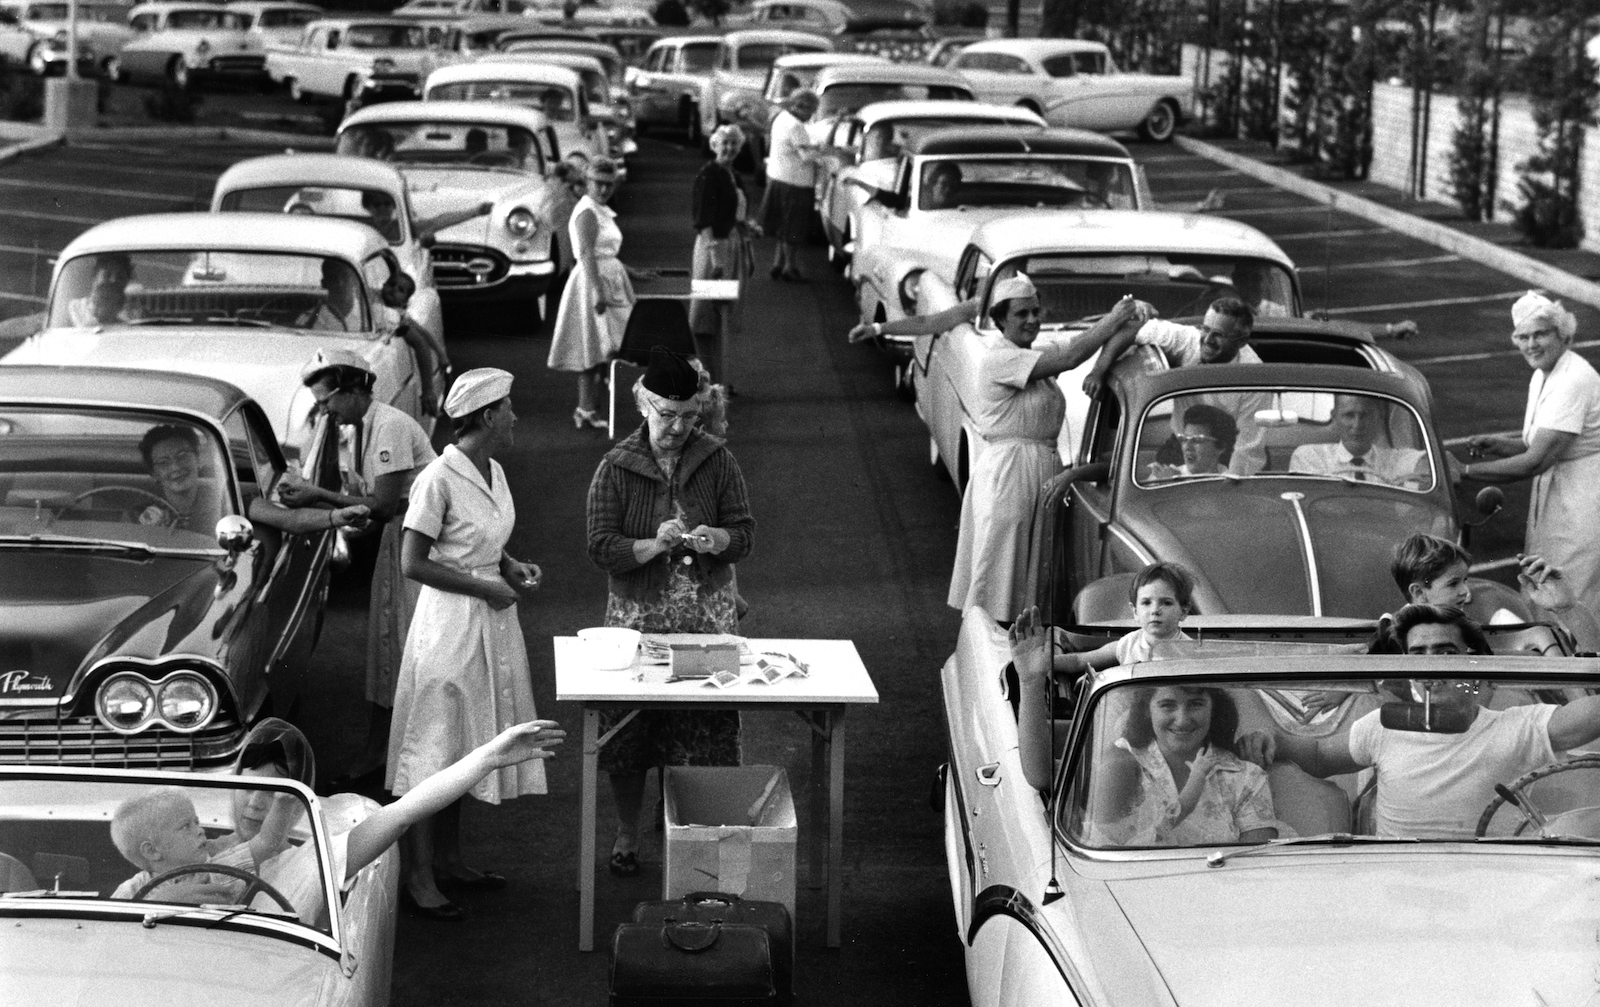 Cars lined up with nurses working